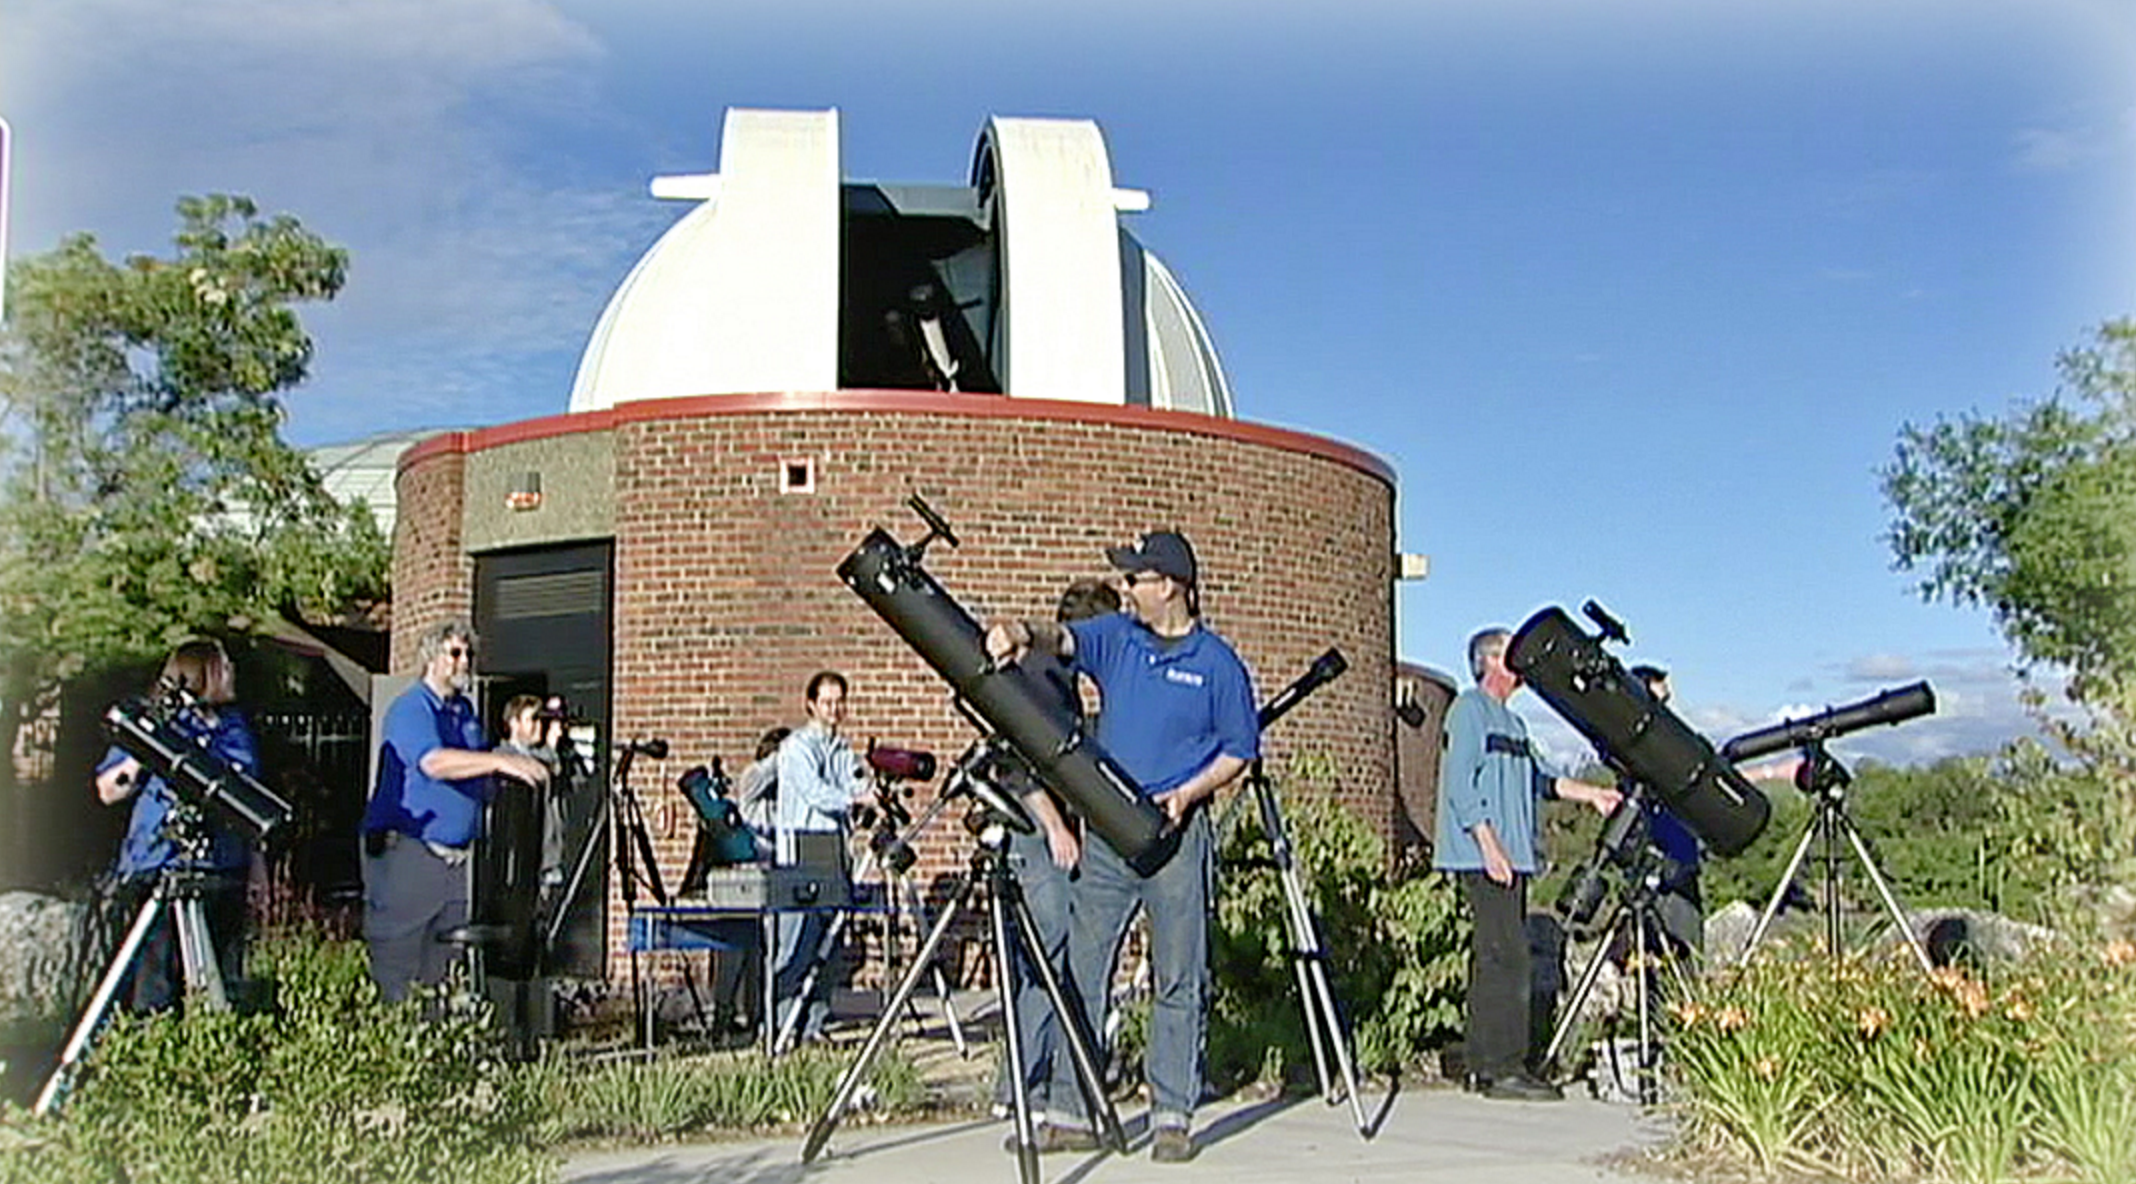 Gearing Up For A Star Party Image